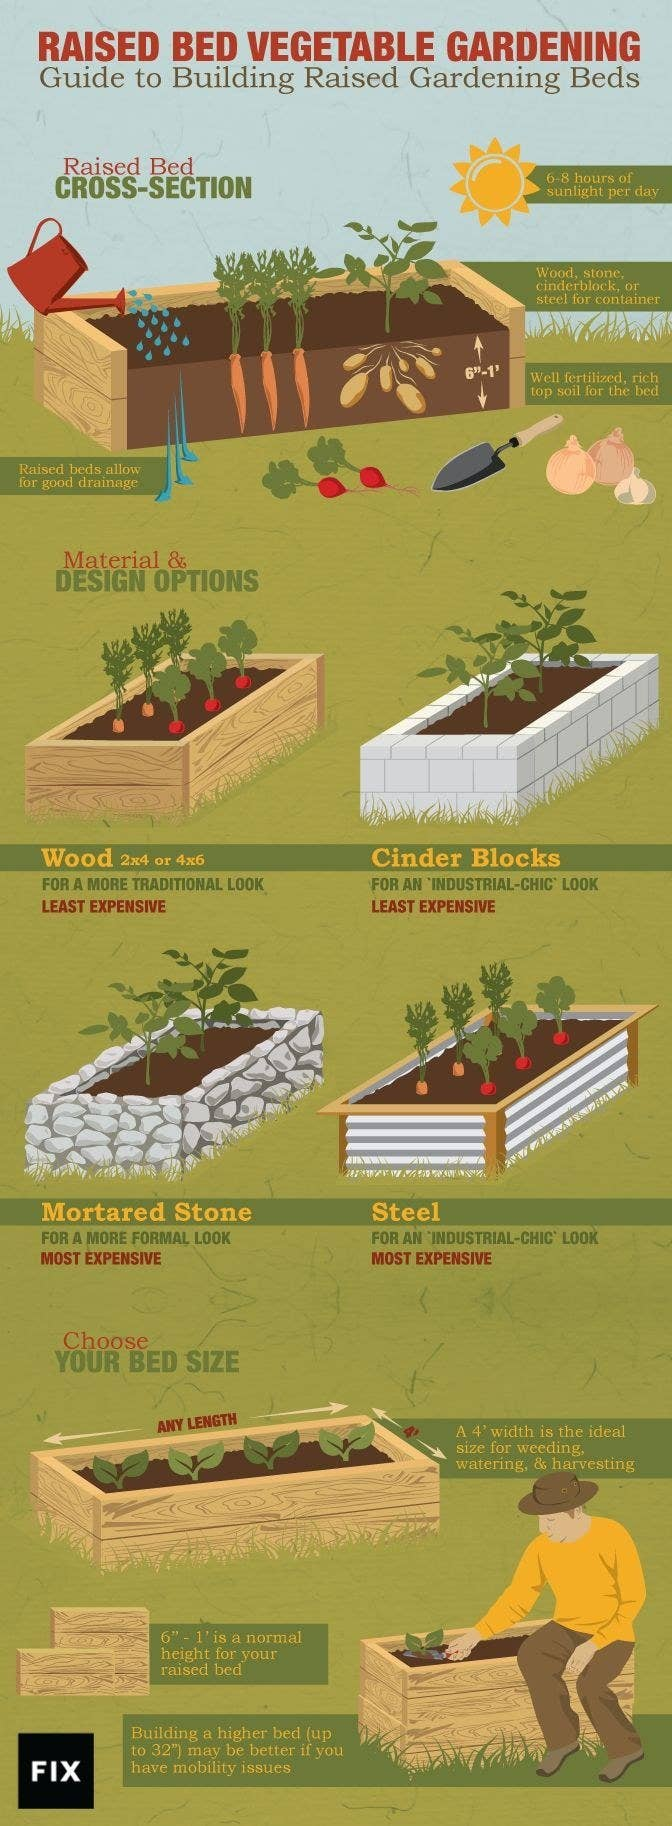 Raised gardening beds keep vegetables away from contaminated soil, can deter some pests, and are easier on backs and knees--here's some information about how to make one.